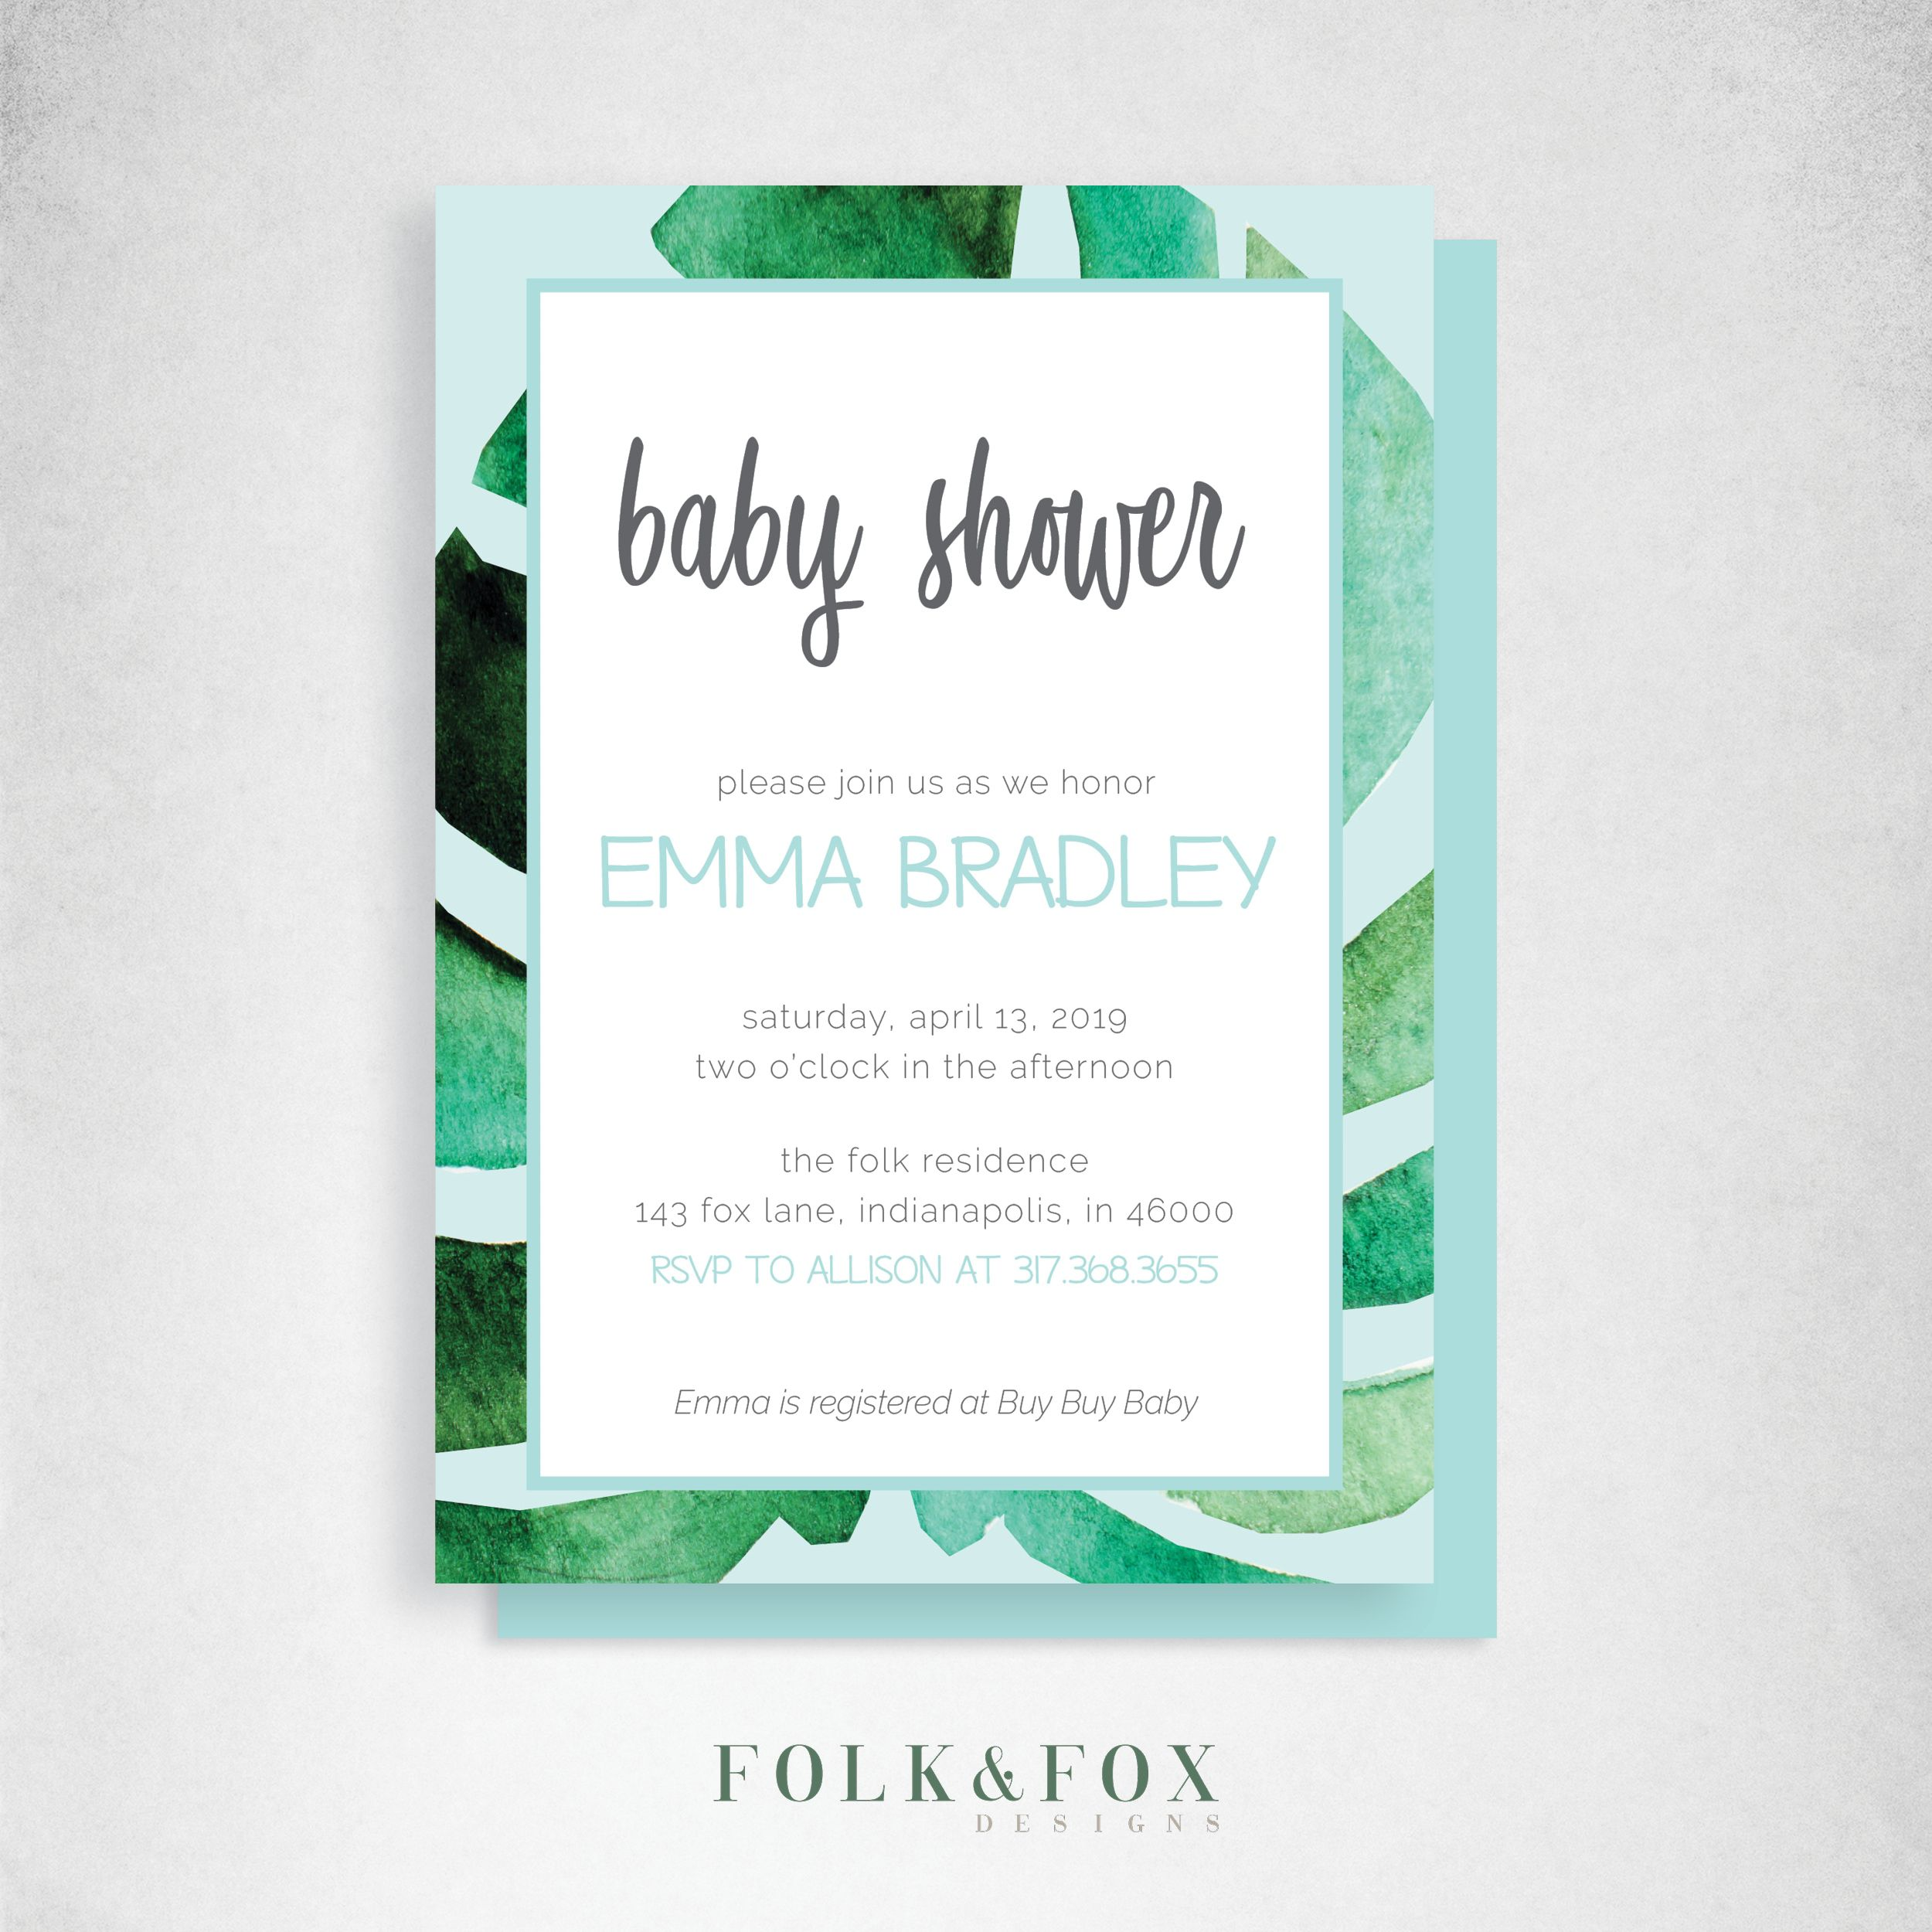 Tropical Baby Shower Invitation, Printable Invitation, Baby Shower Invite, Gender